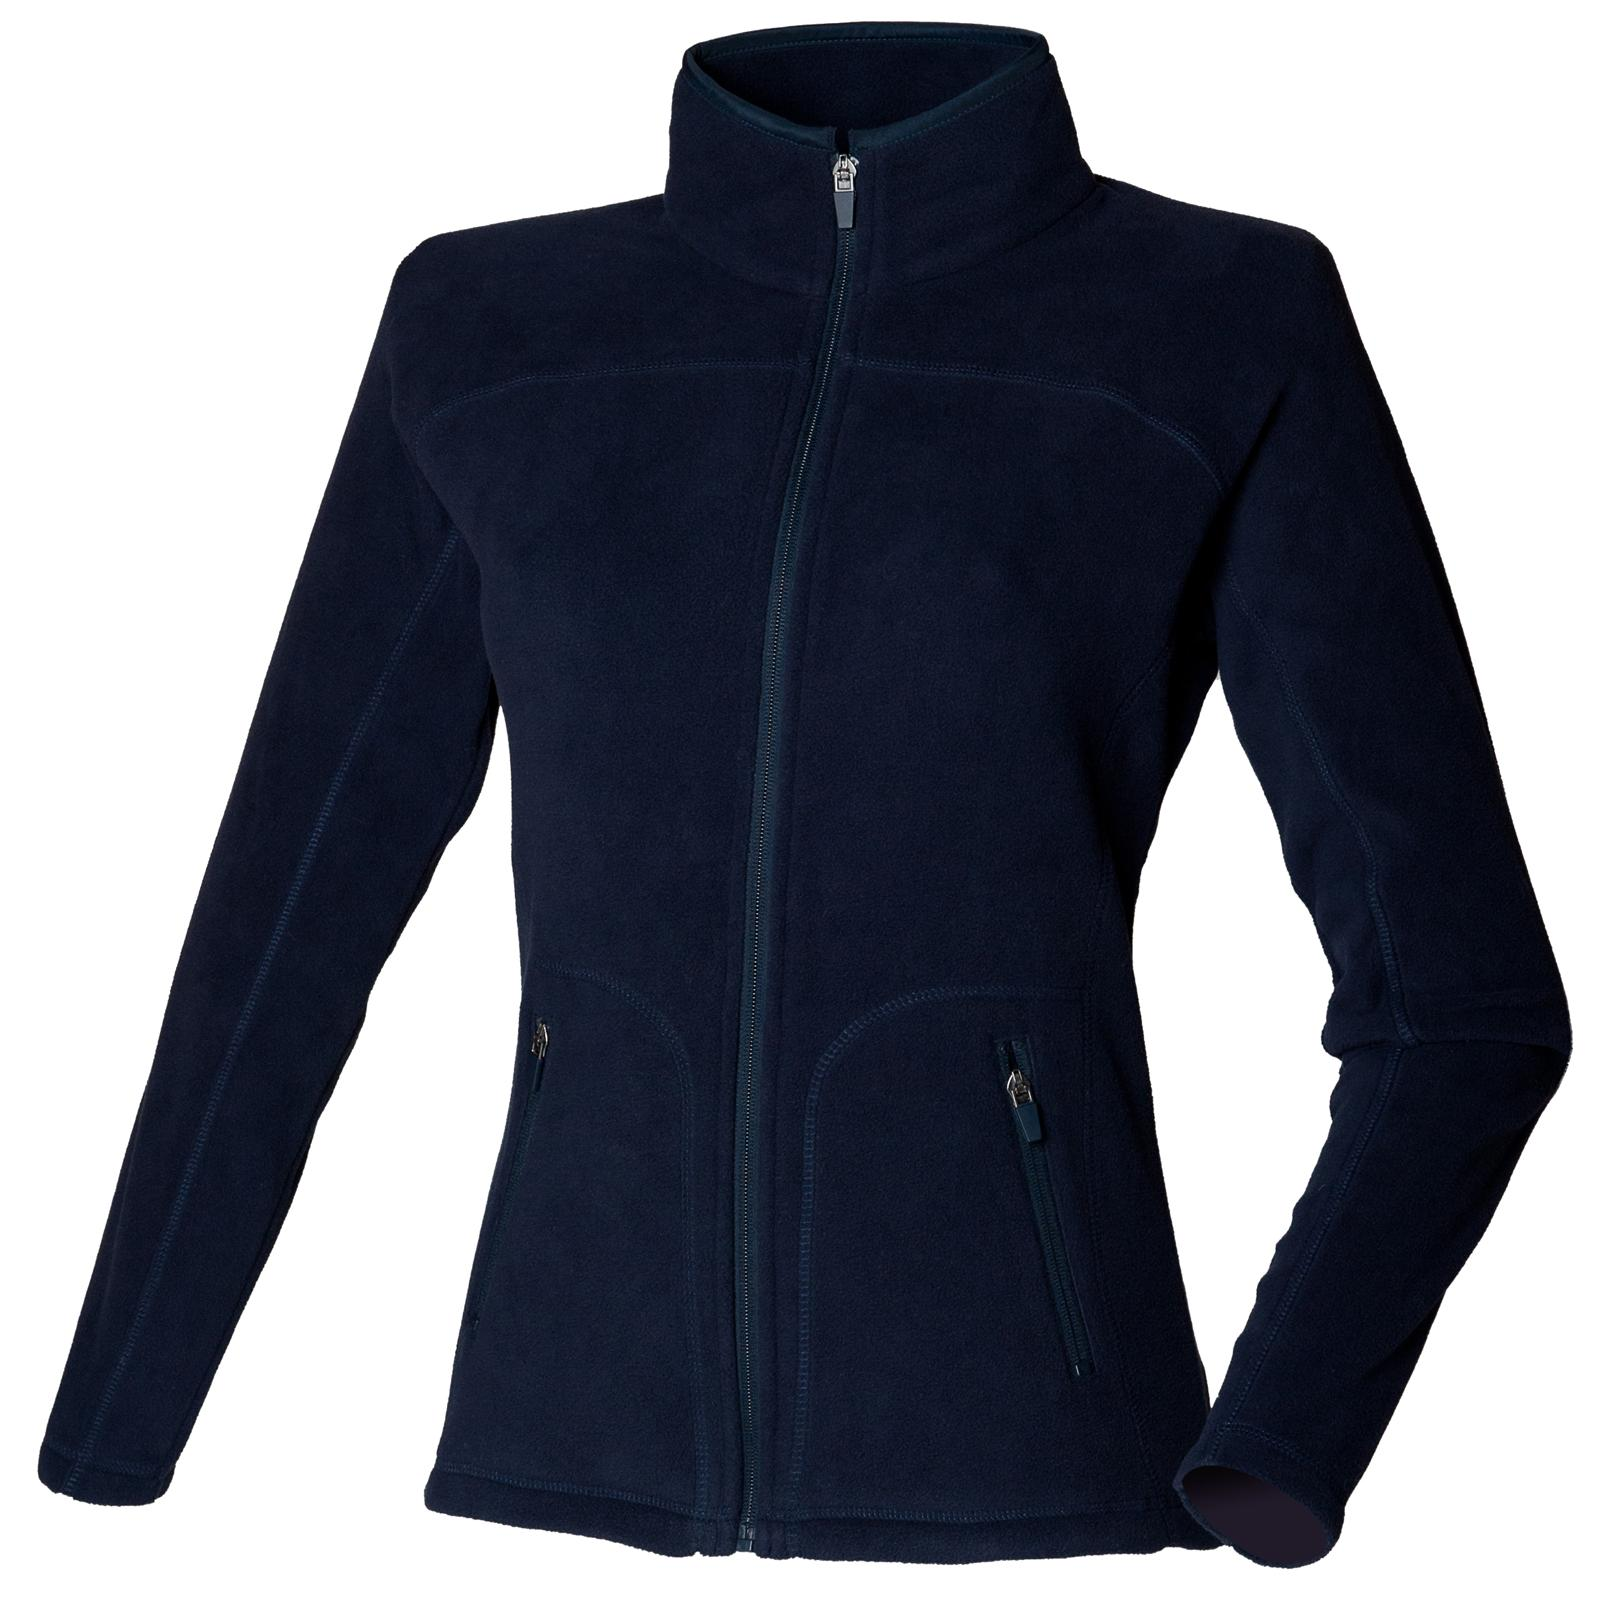 ladies fleece jacket- Warm winter outerwear - jacketsreviews.com